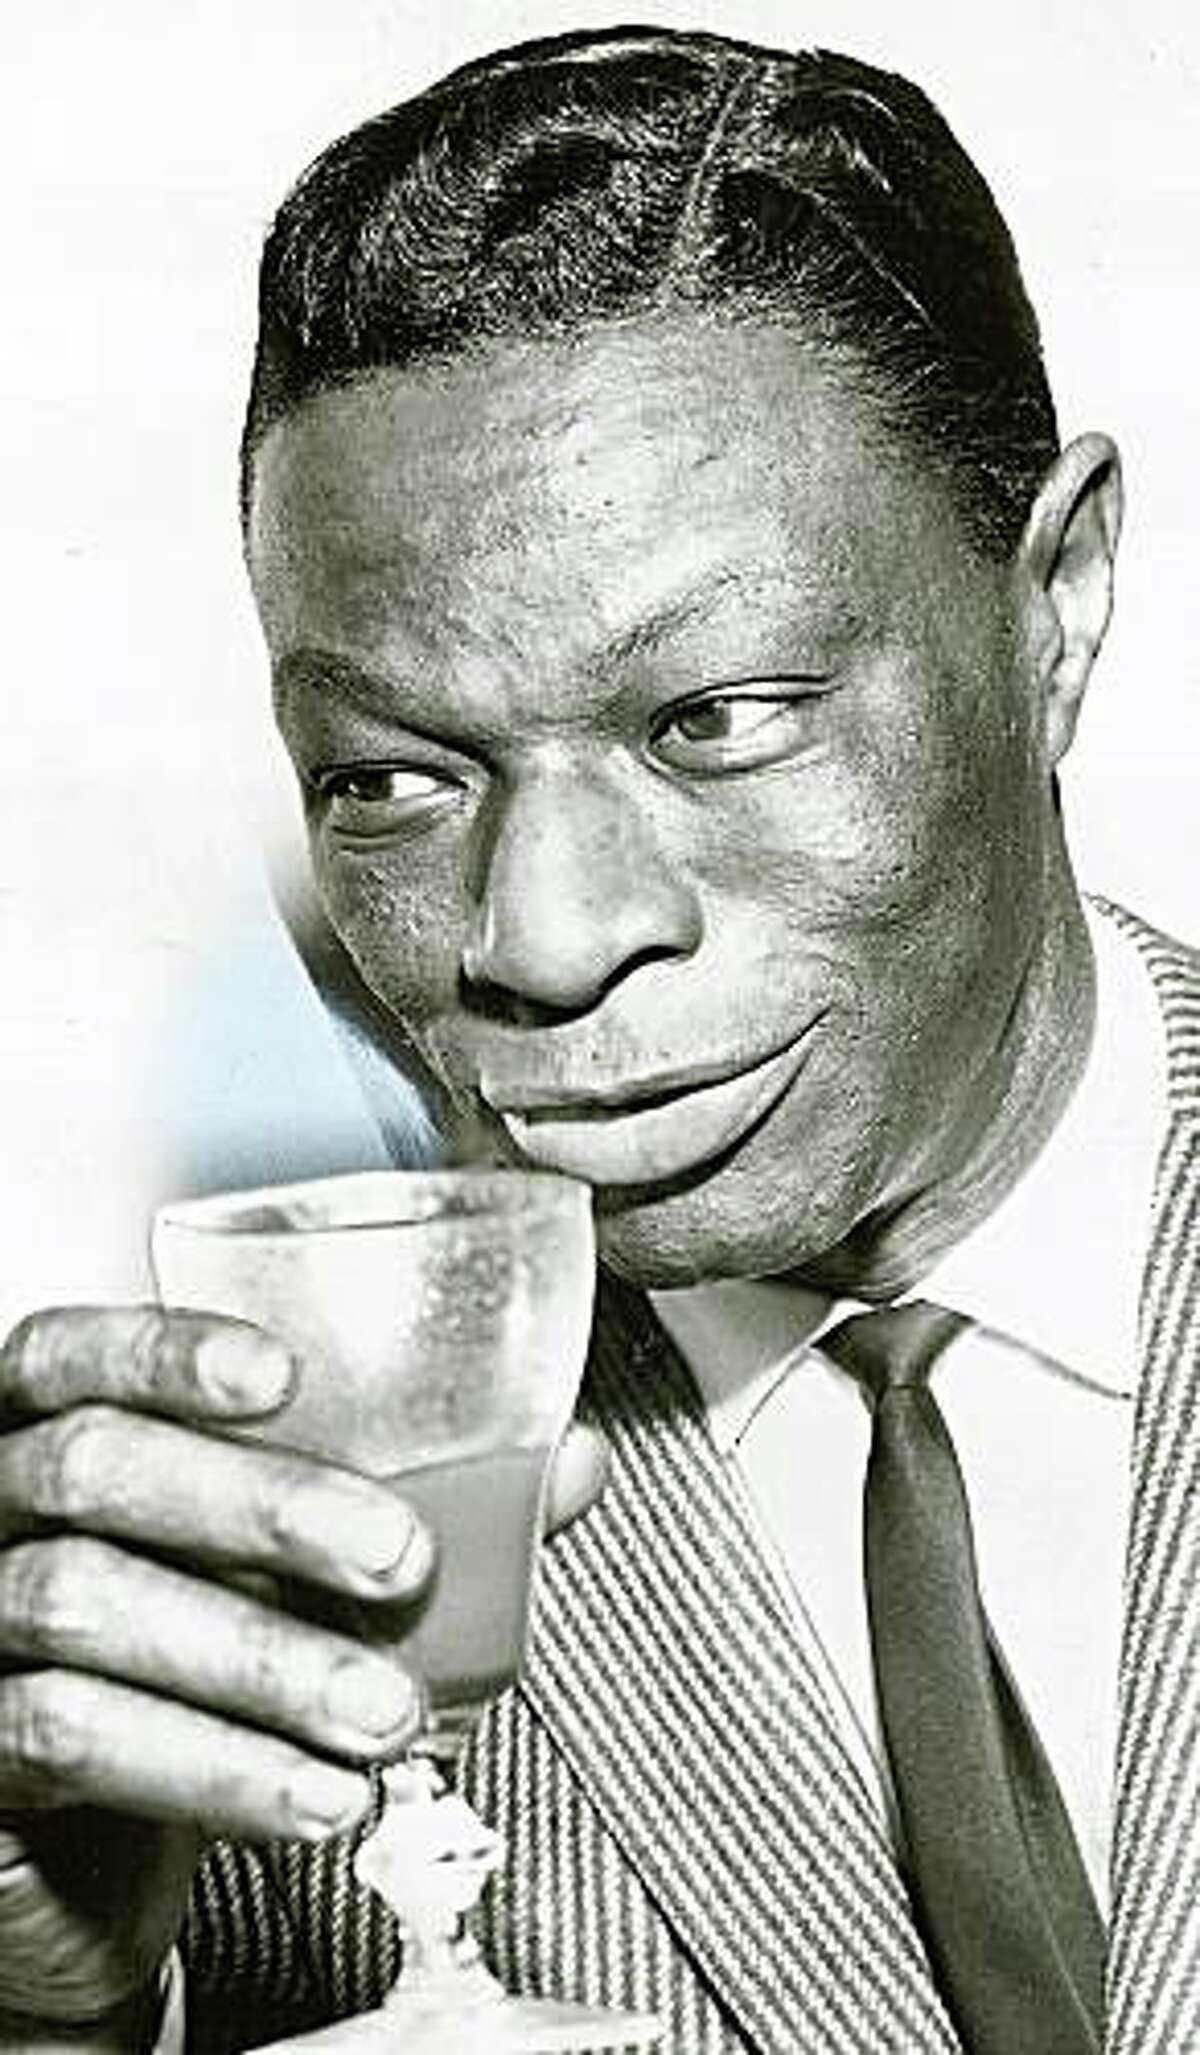 wayback08_march.JPG March 12, 1959- Nat King Cole. Bob Campbell/